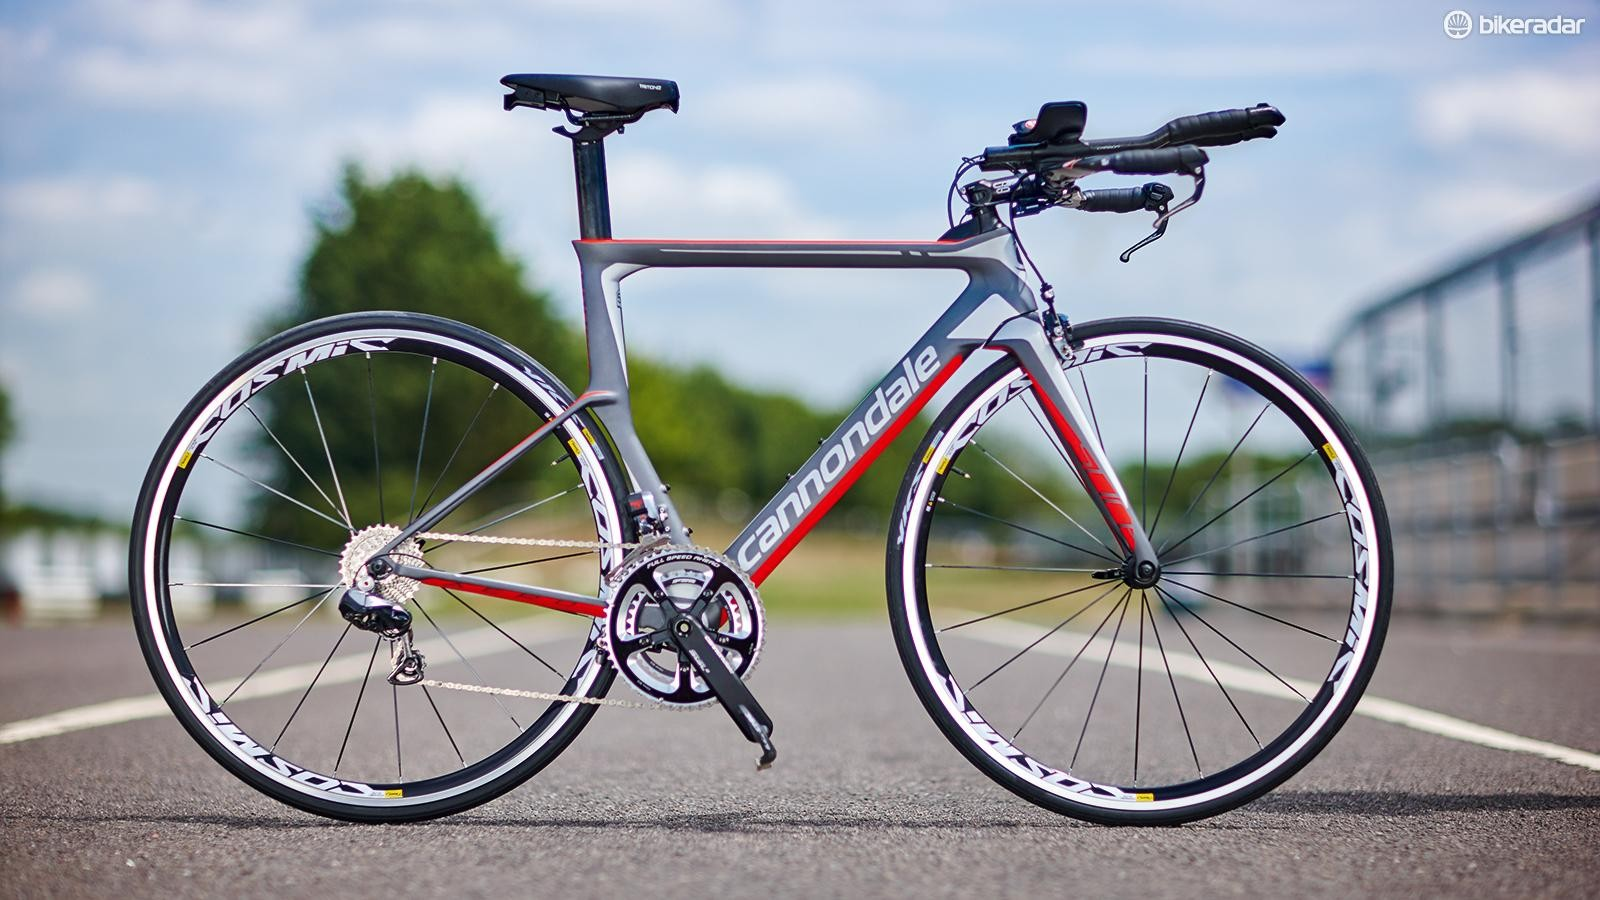 Cannondale's Slice Dura-Ace Di2 is a light and nimble ride